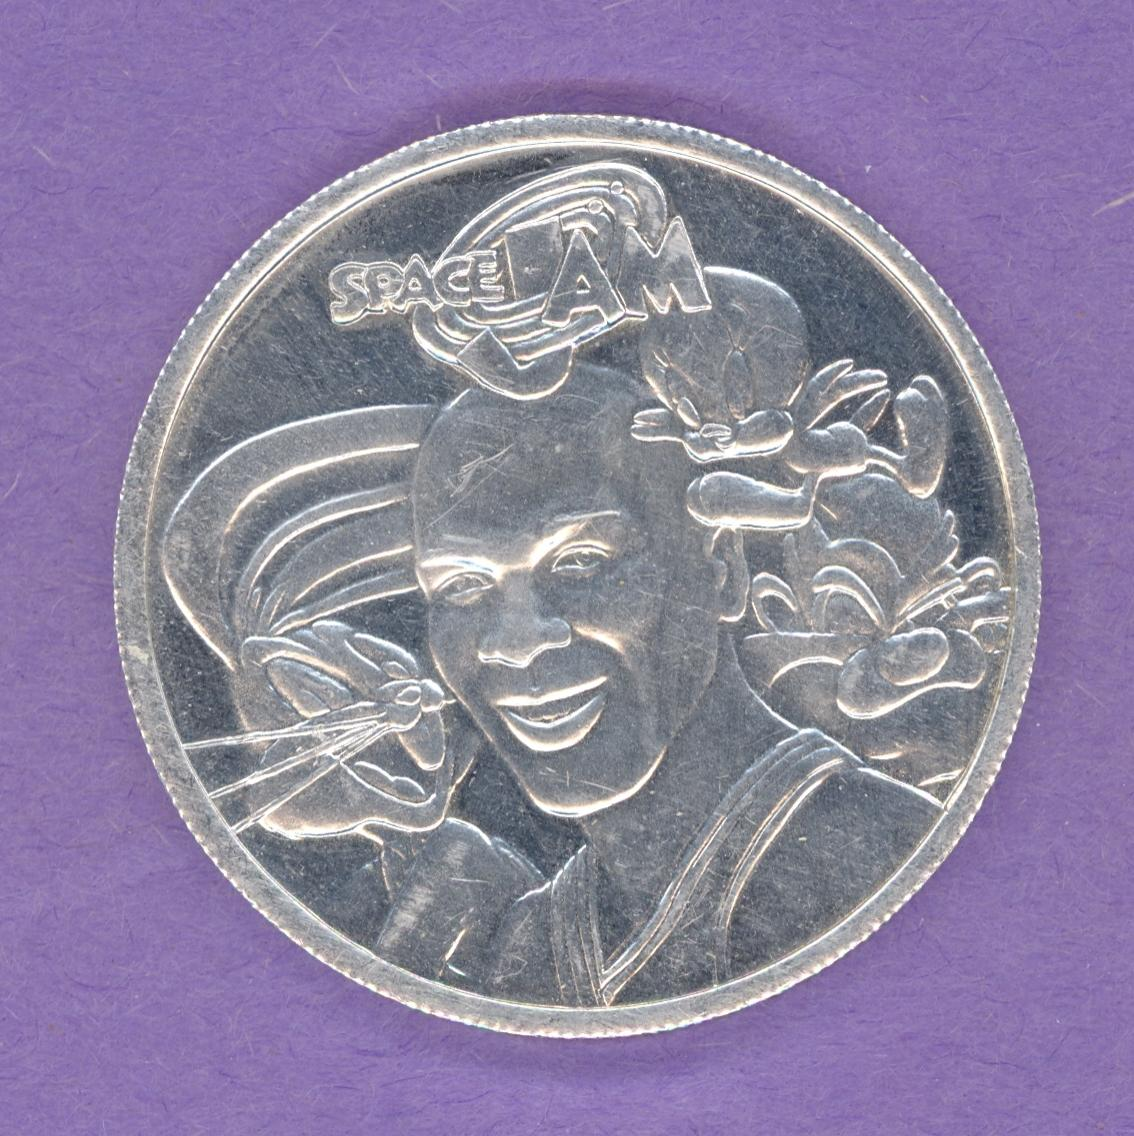 Michael Jordan Space Jam Medallion